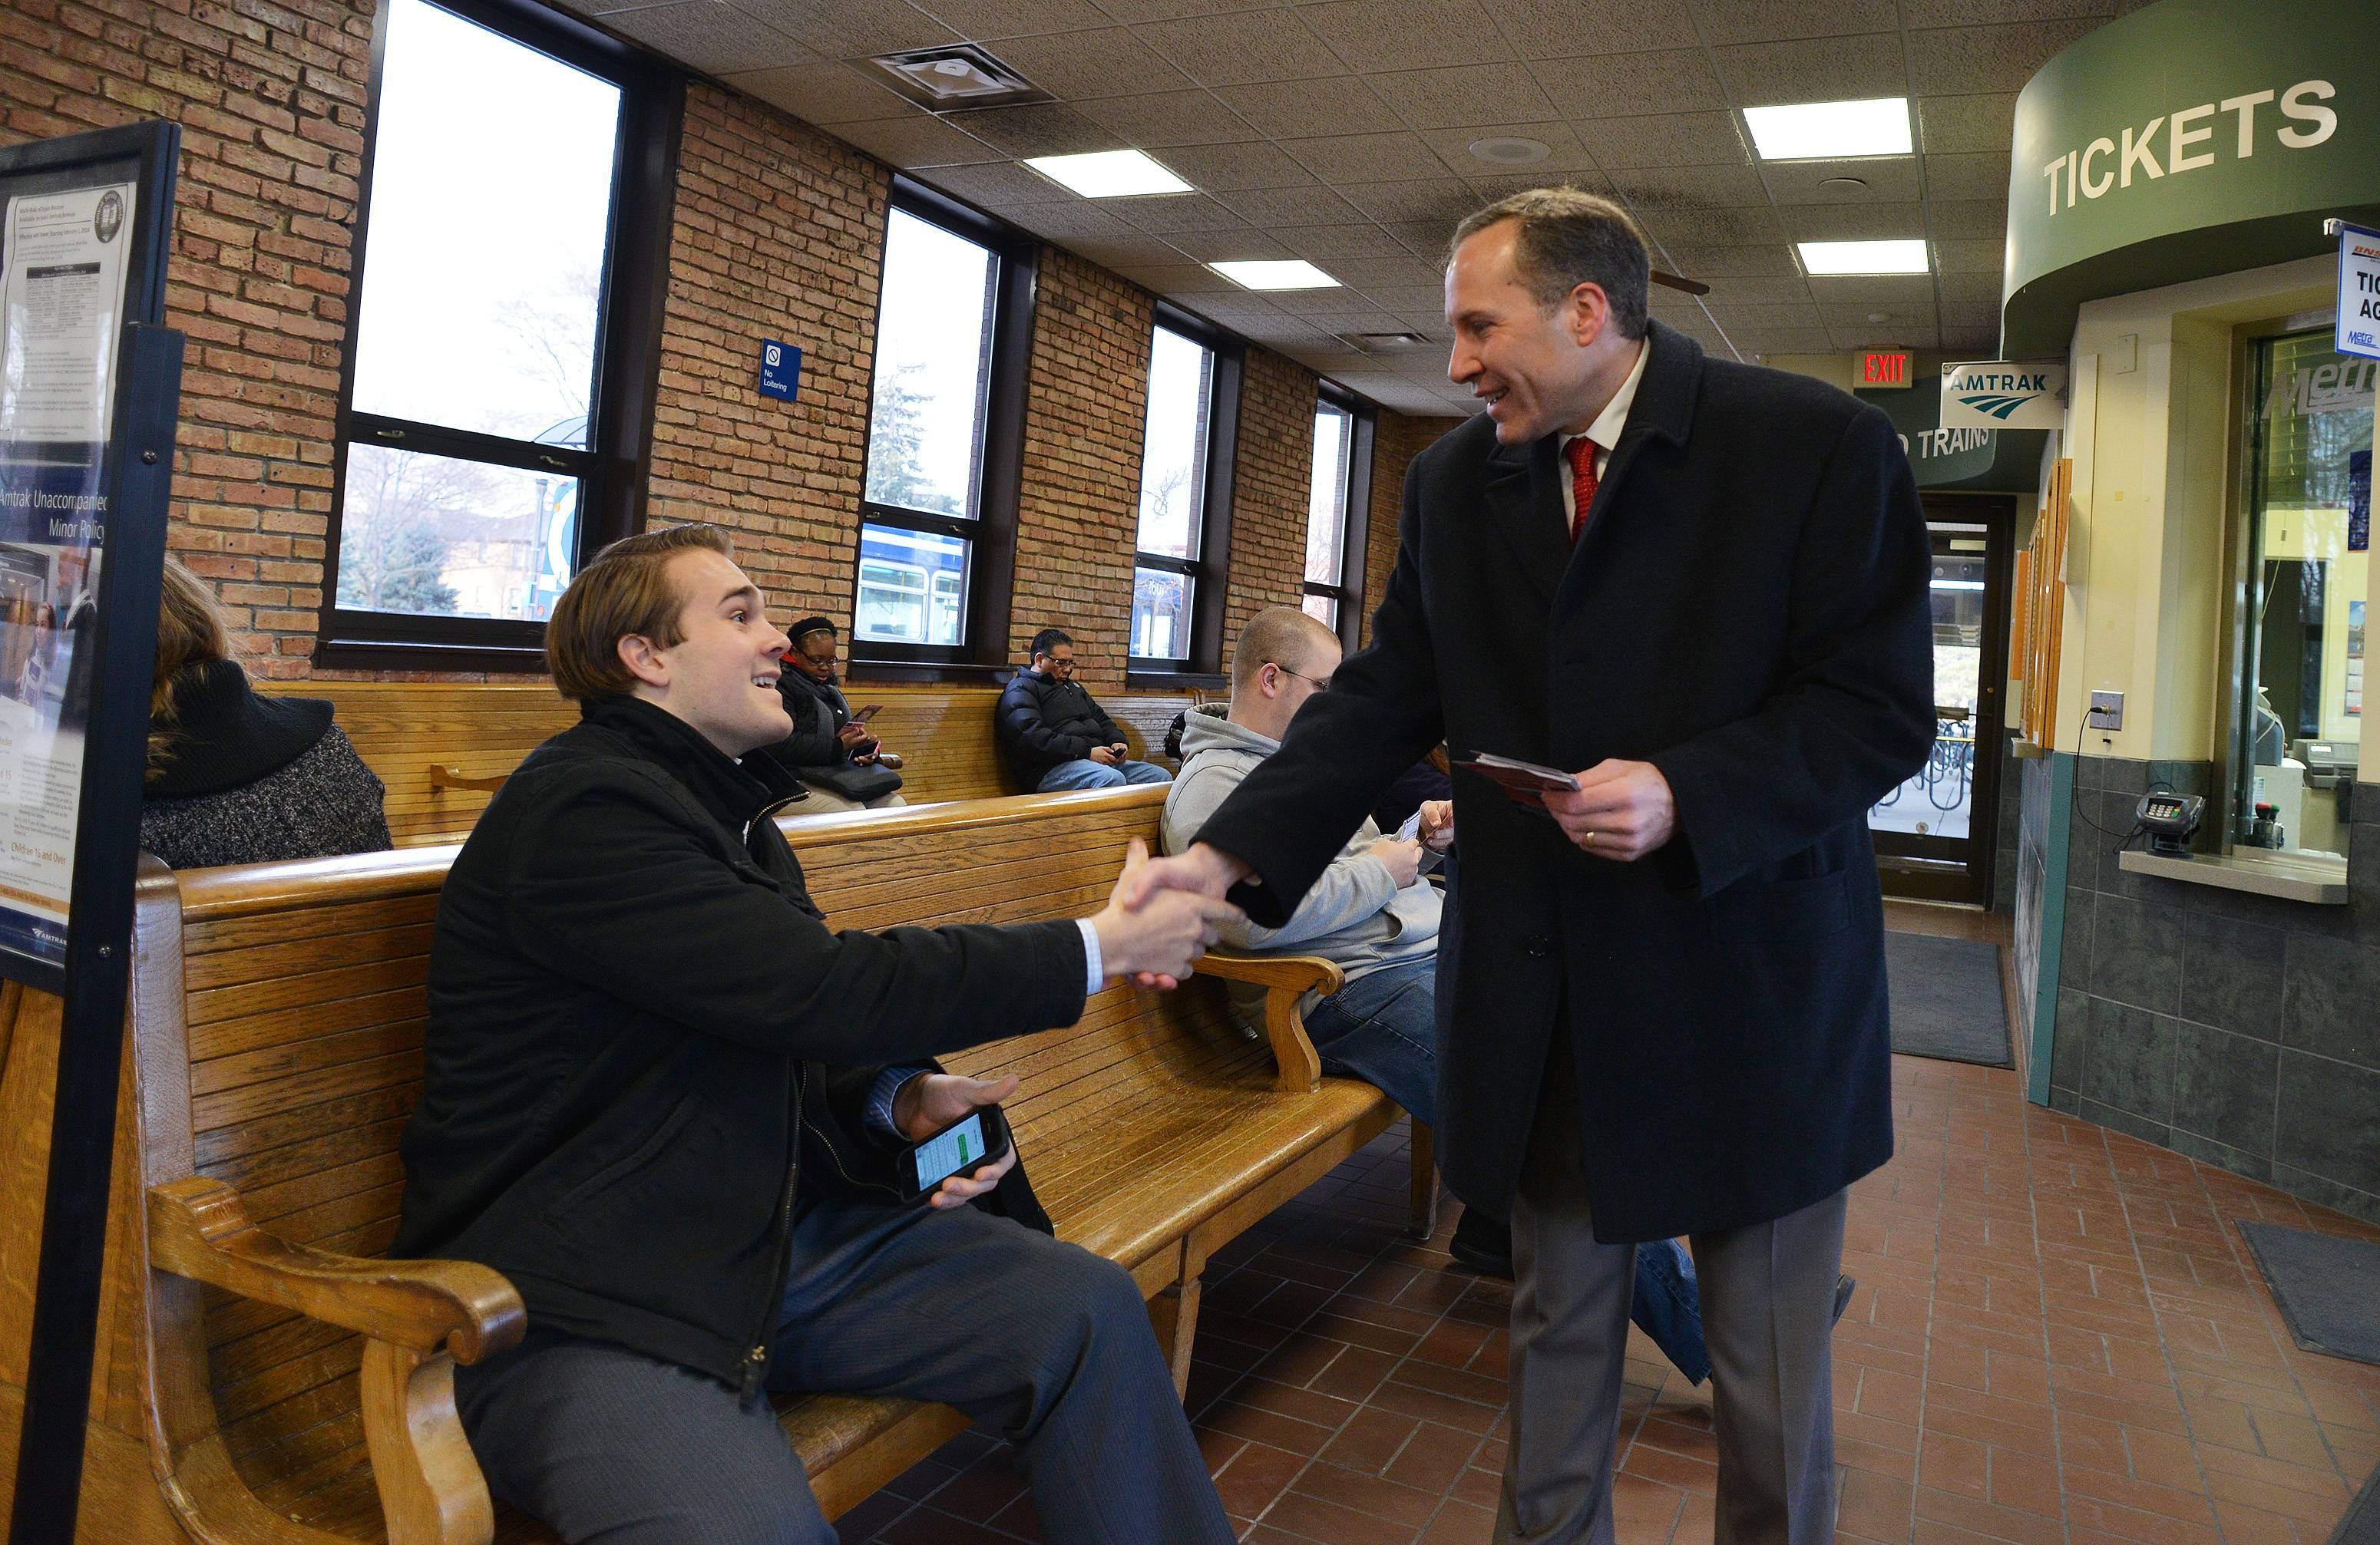 11th Congressional Candidate Chris Balkema of Channahon greets commuters, including Sam Freedlund of Naperville, early Tuesday morning at the Naperville commuter train station.